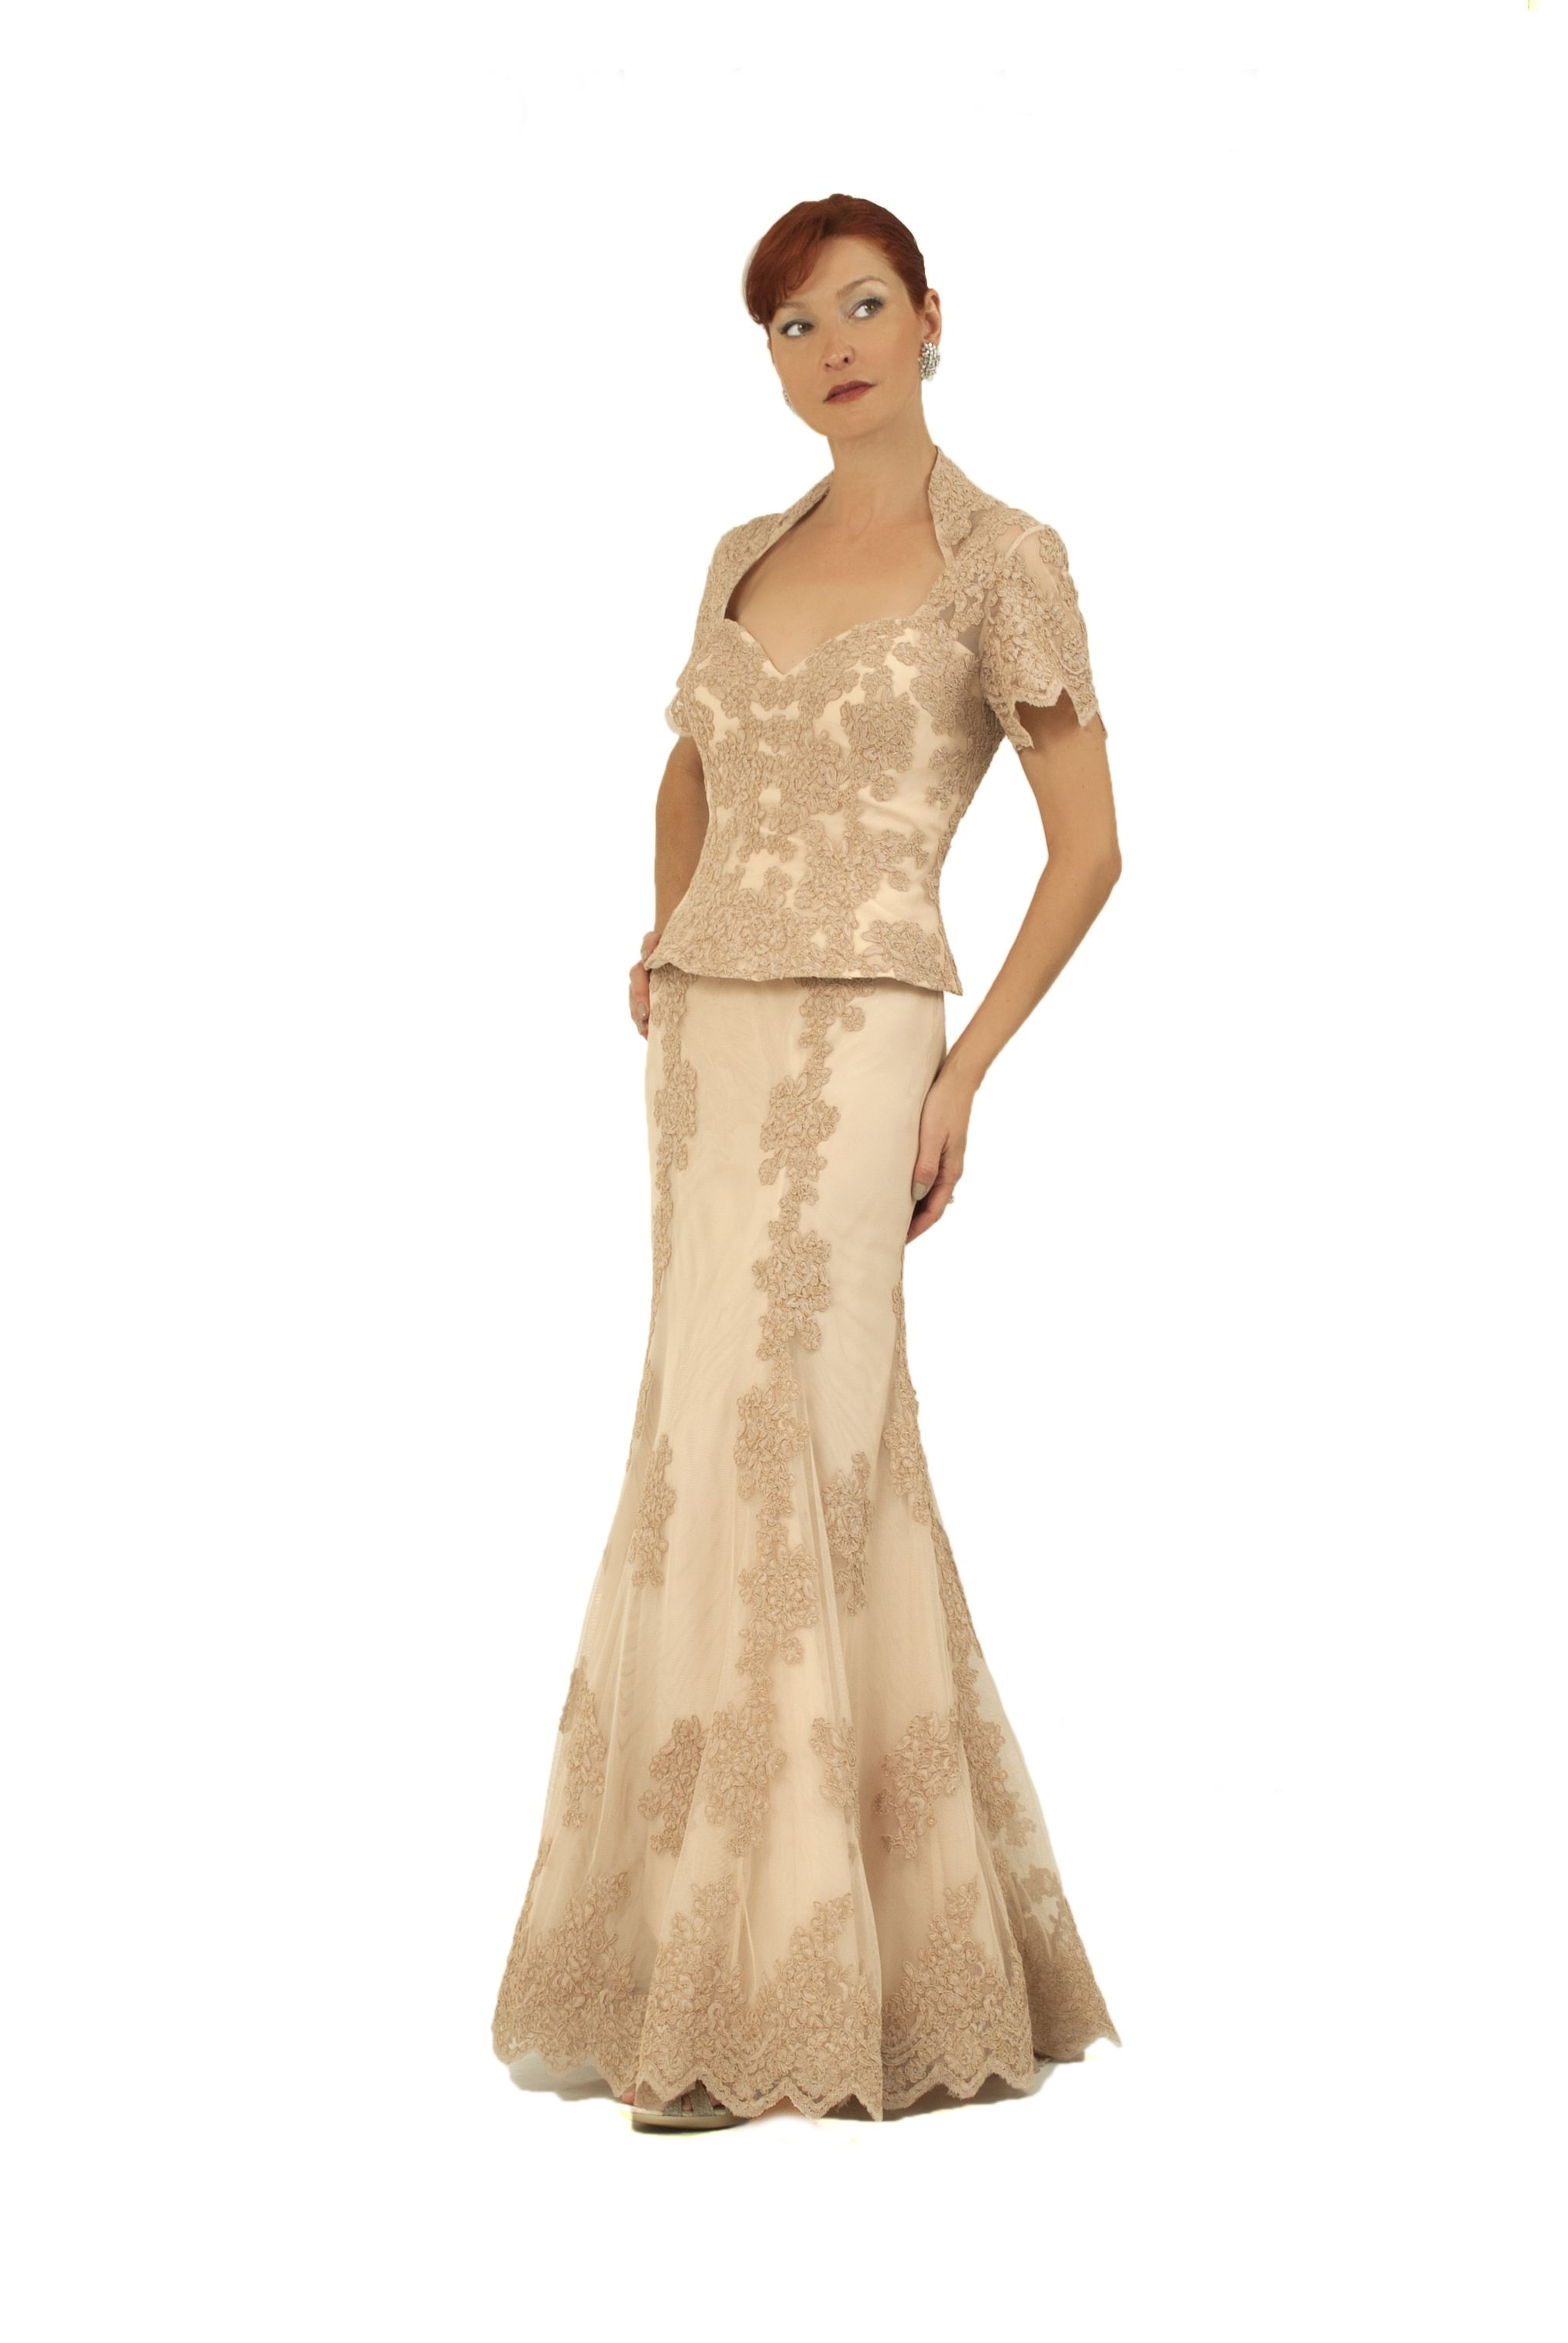 The most flattering mother of the bride dresses bride dresses mother of the bride dress ideas mother of the bride gowns wedding planning ombrellifo Gallery